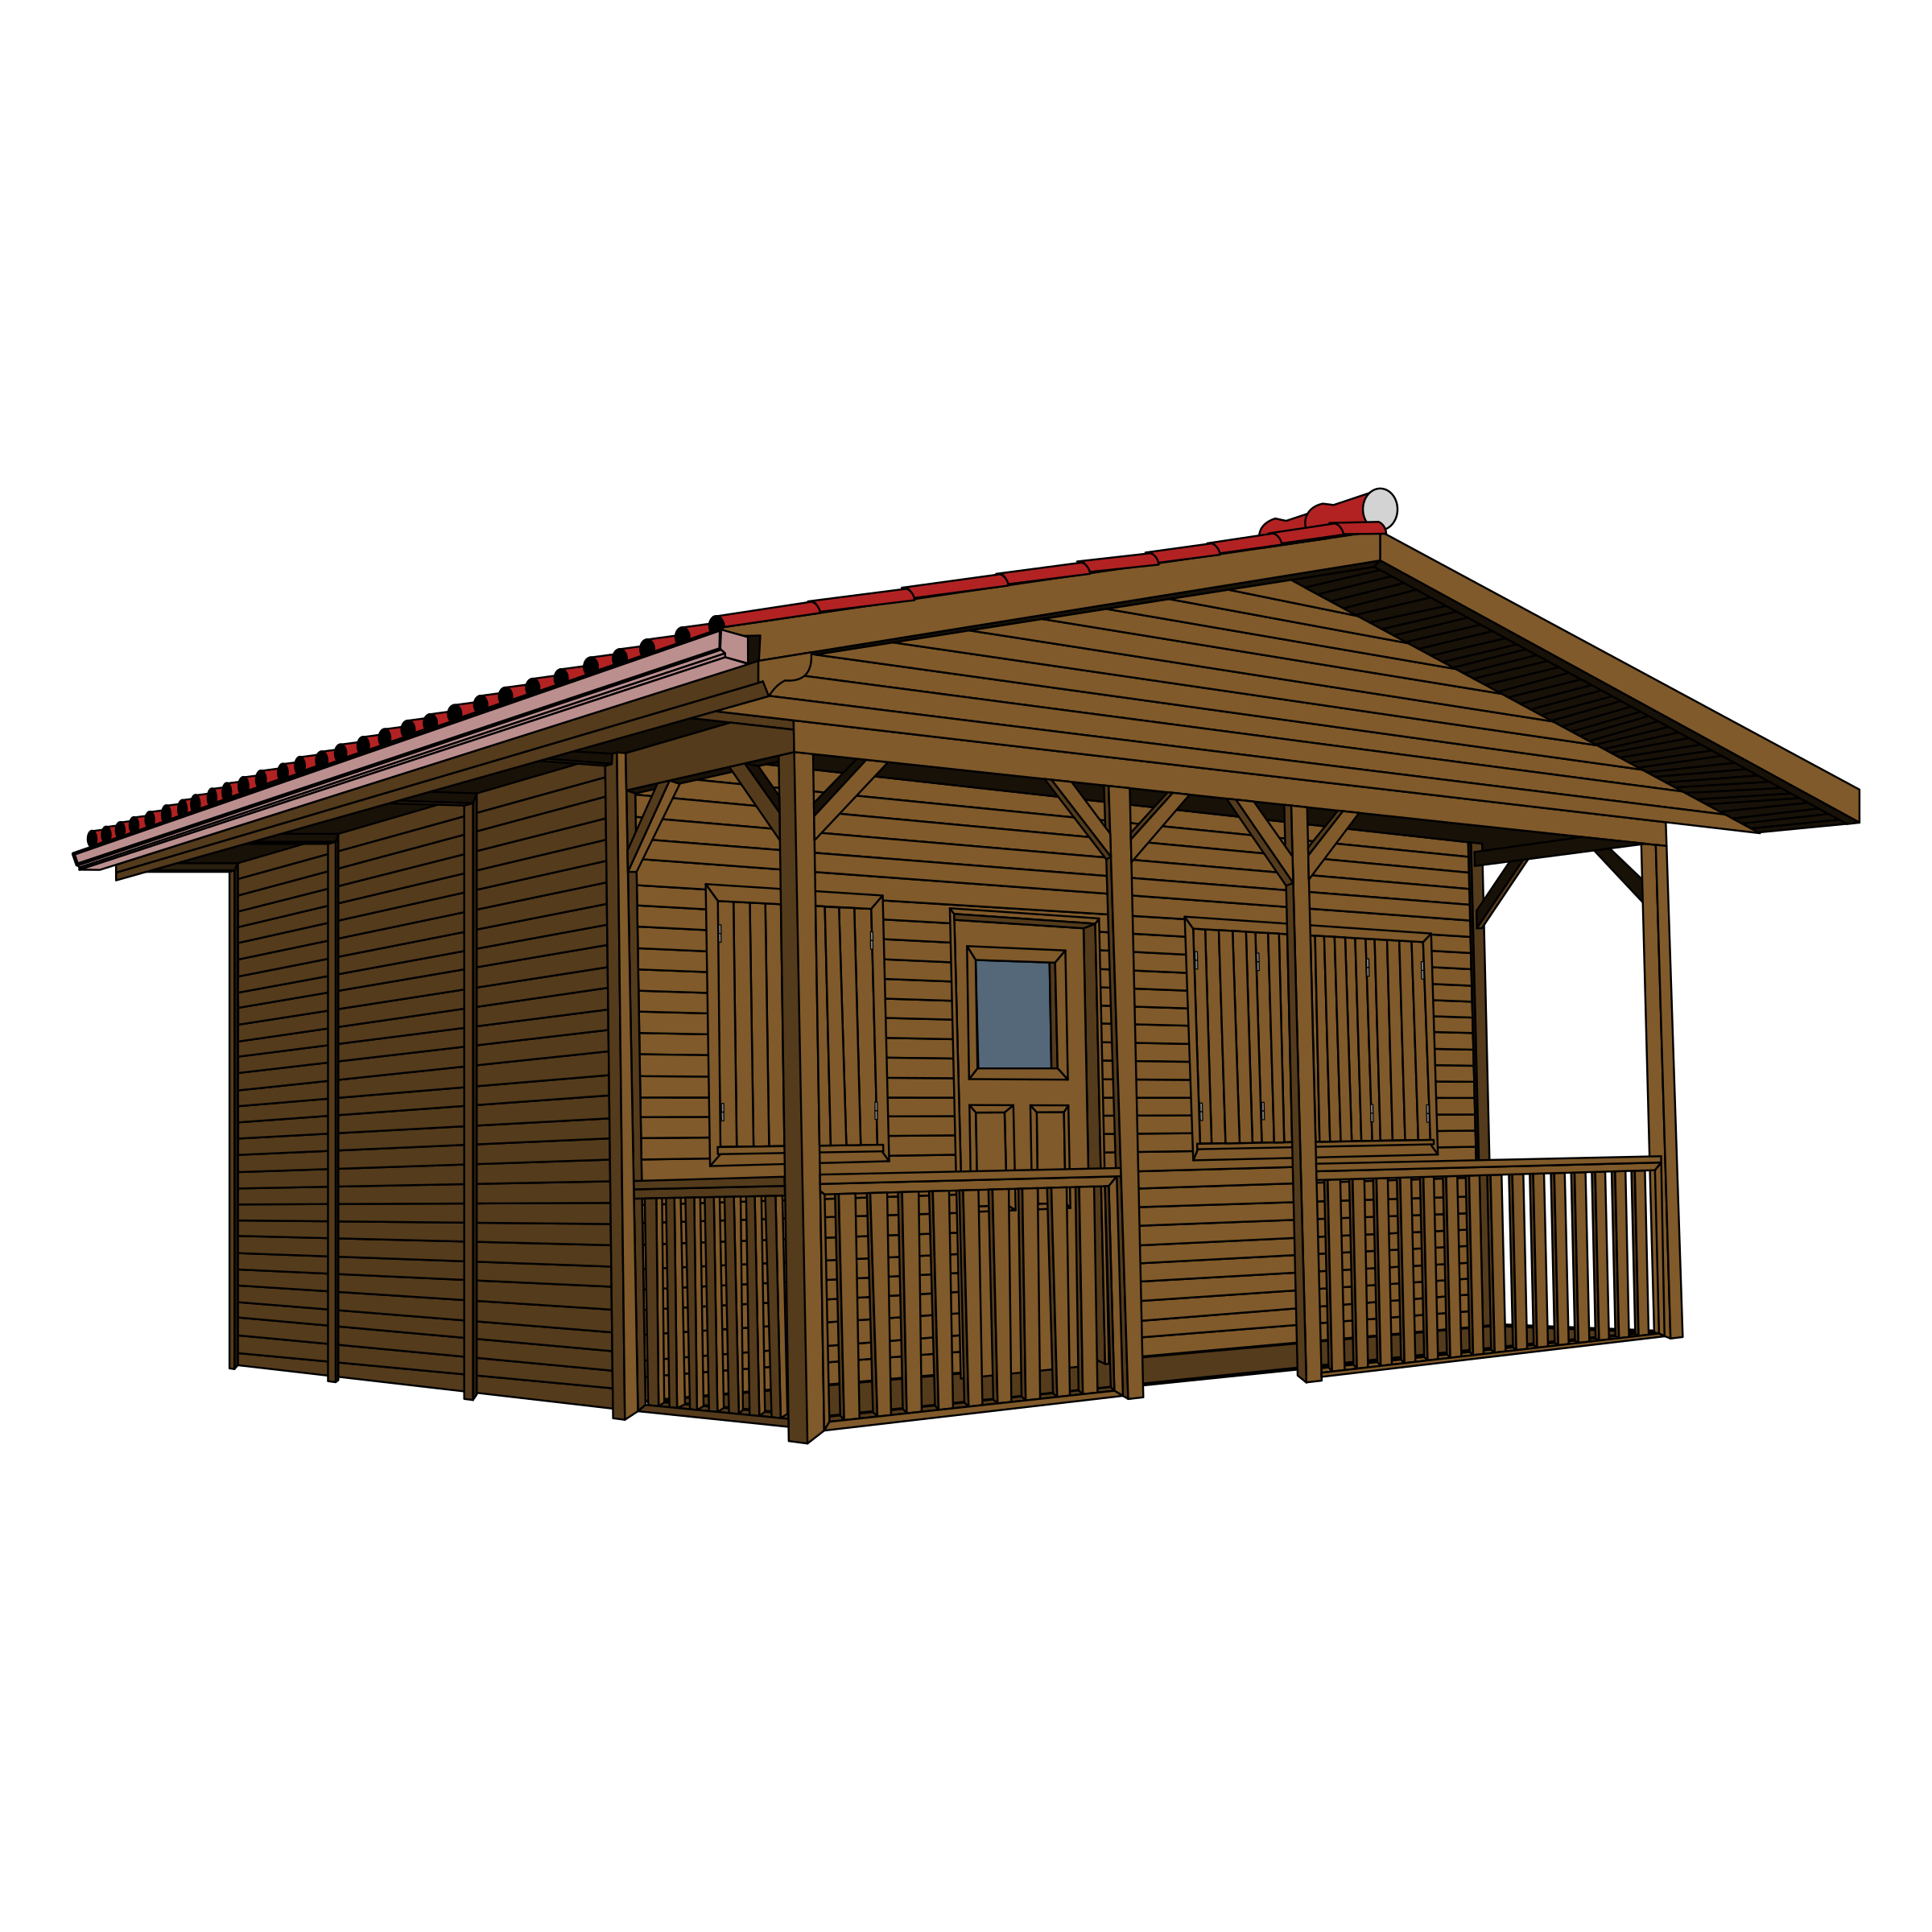 Wooden transparent background mart. Small house png